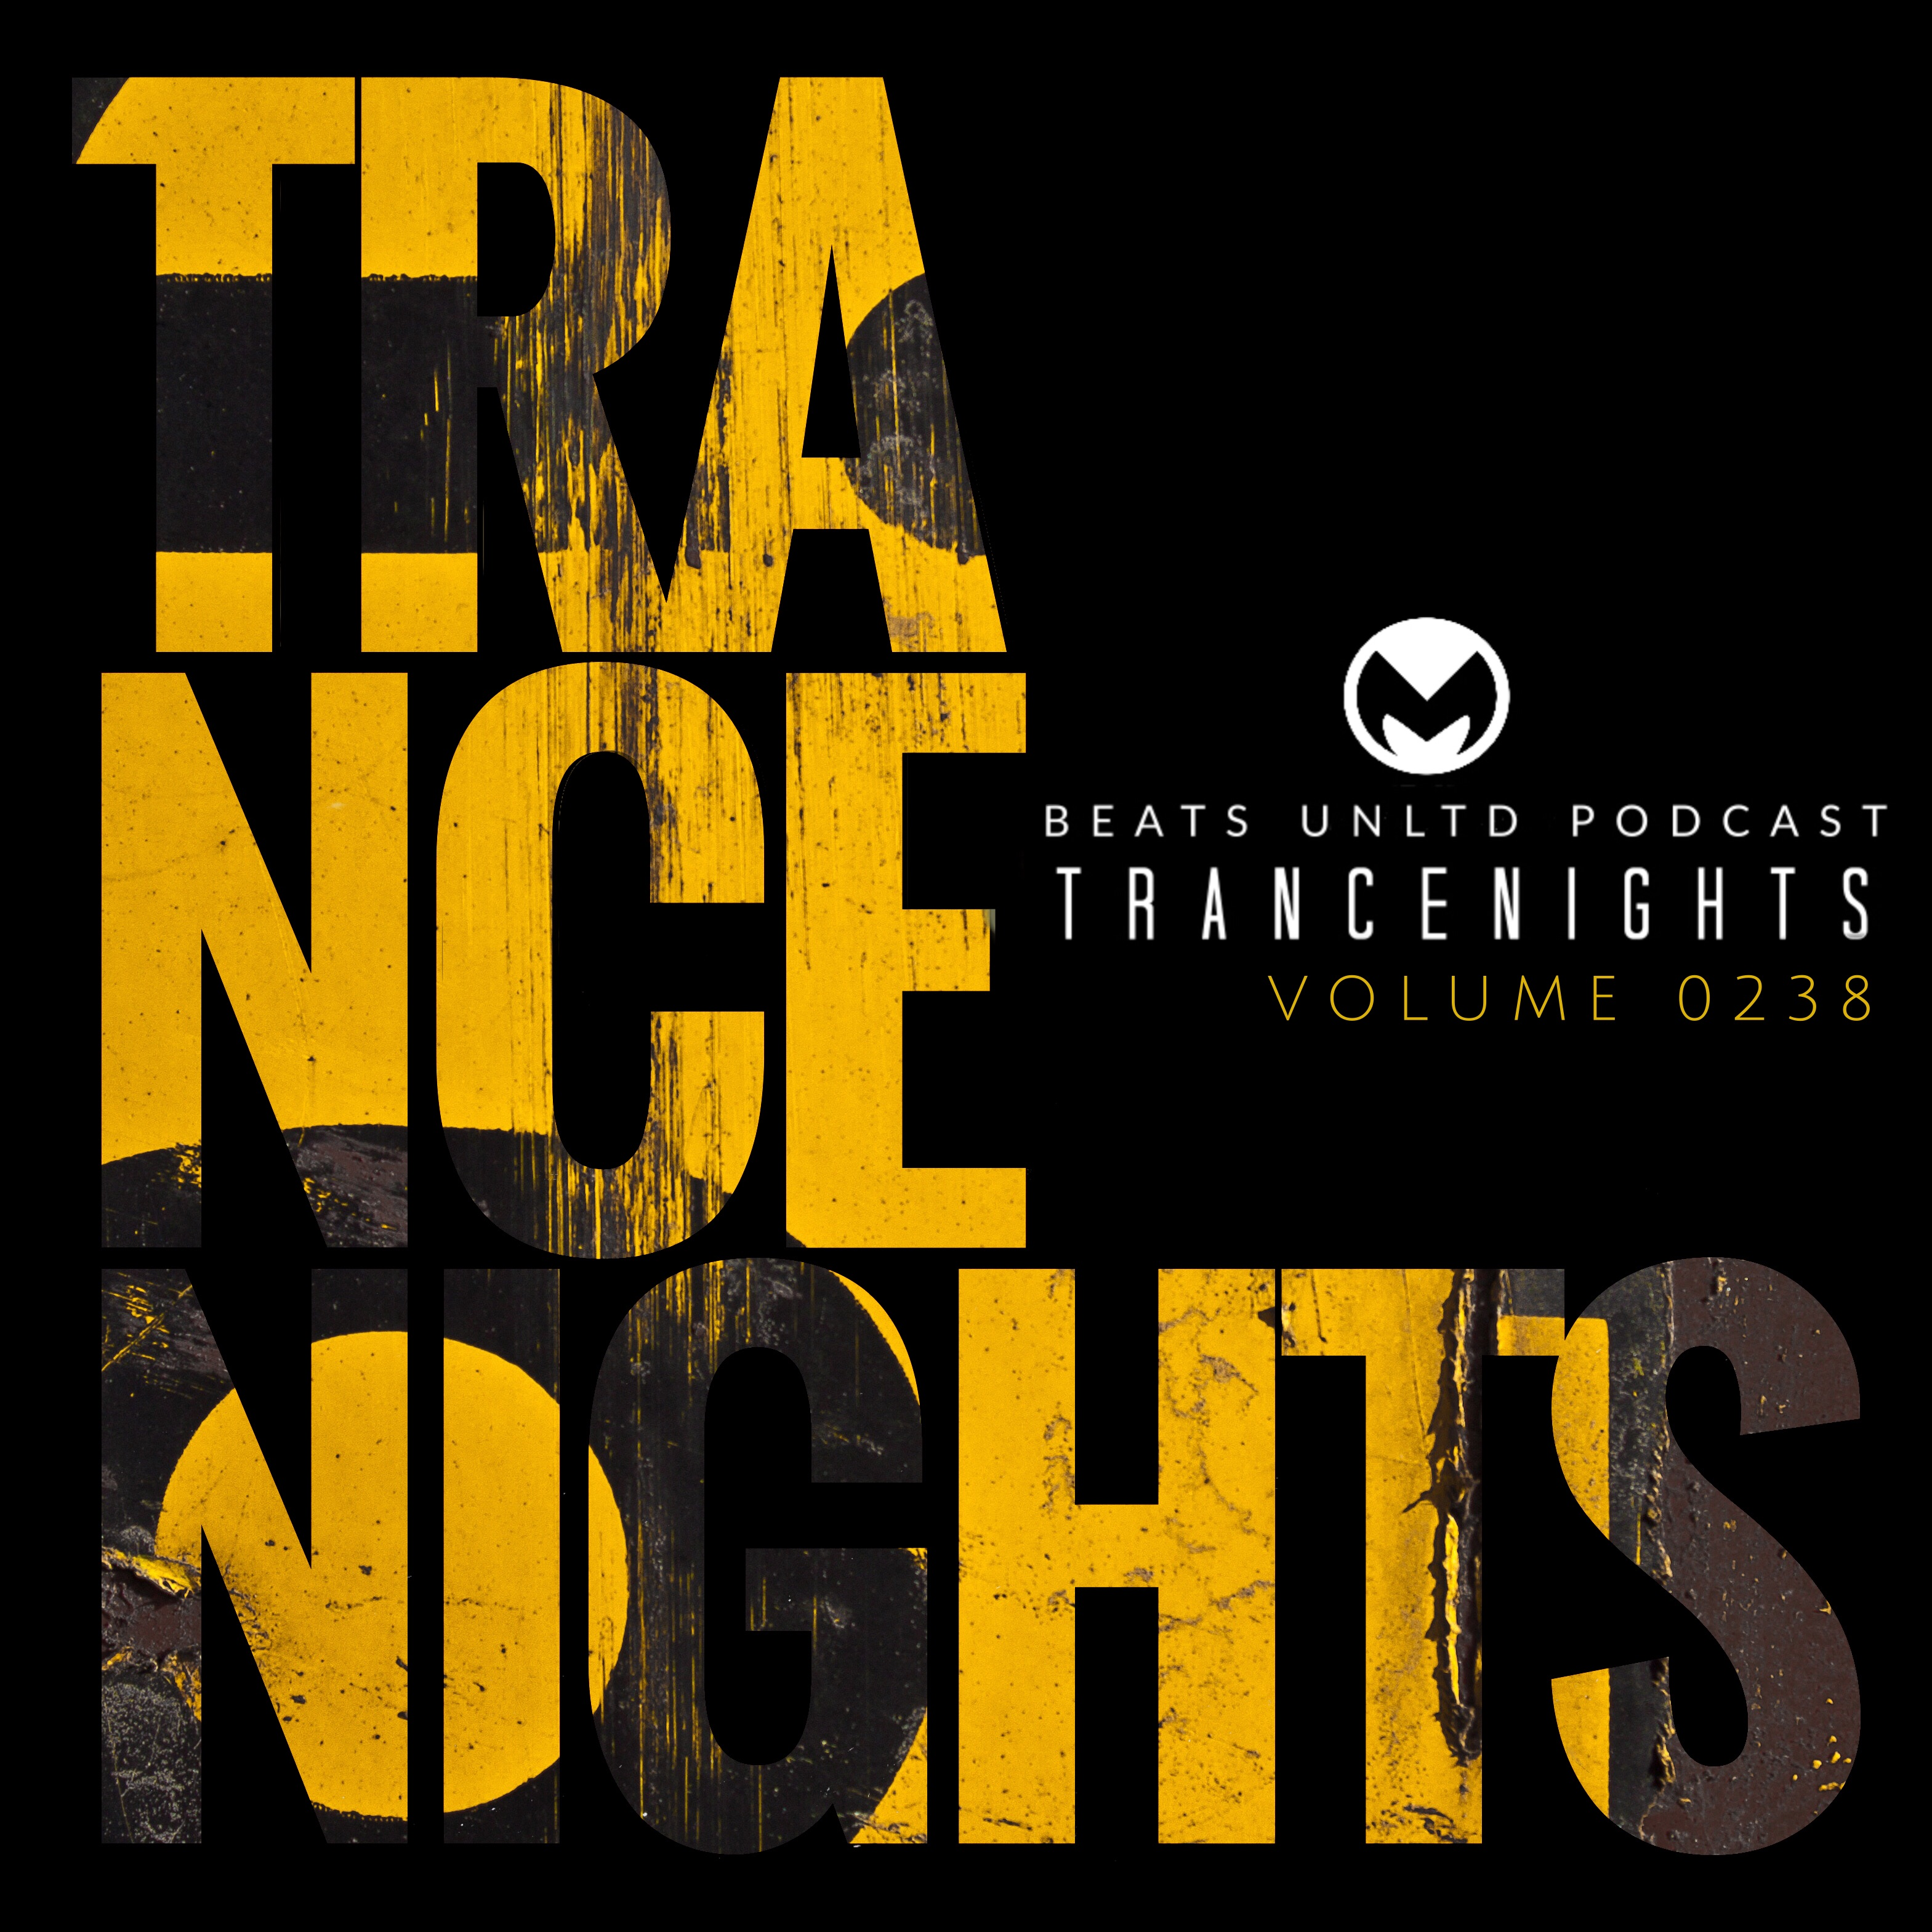 238 Trance Nights Volume 0238